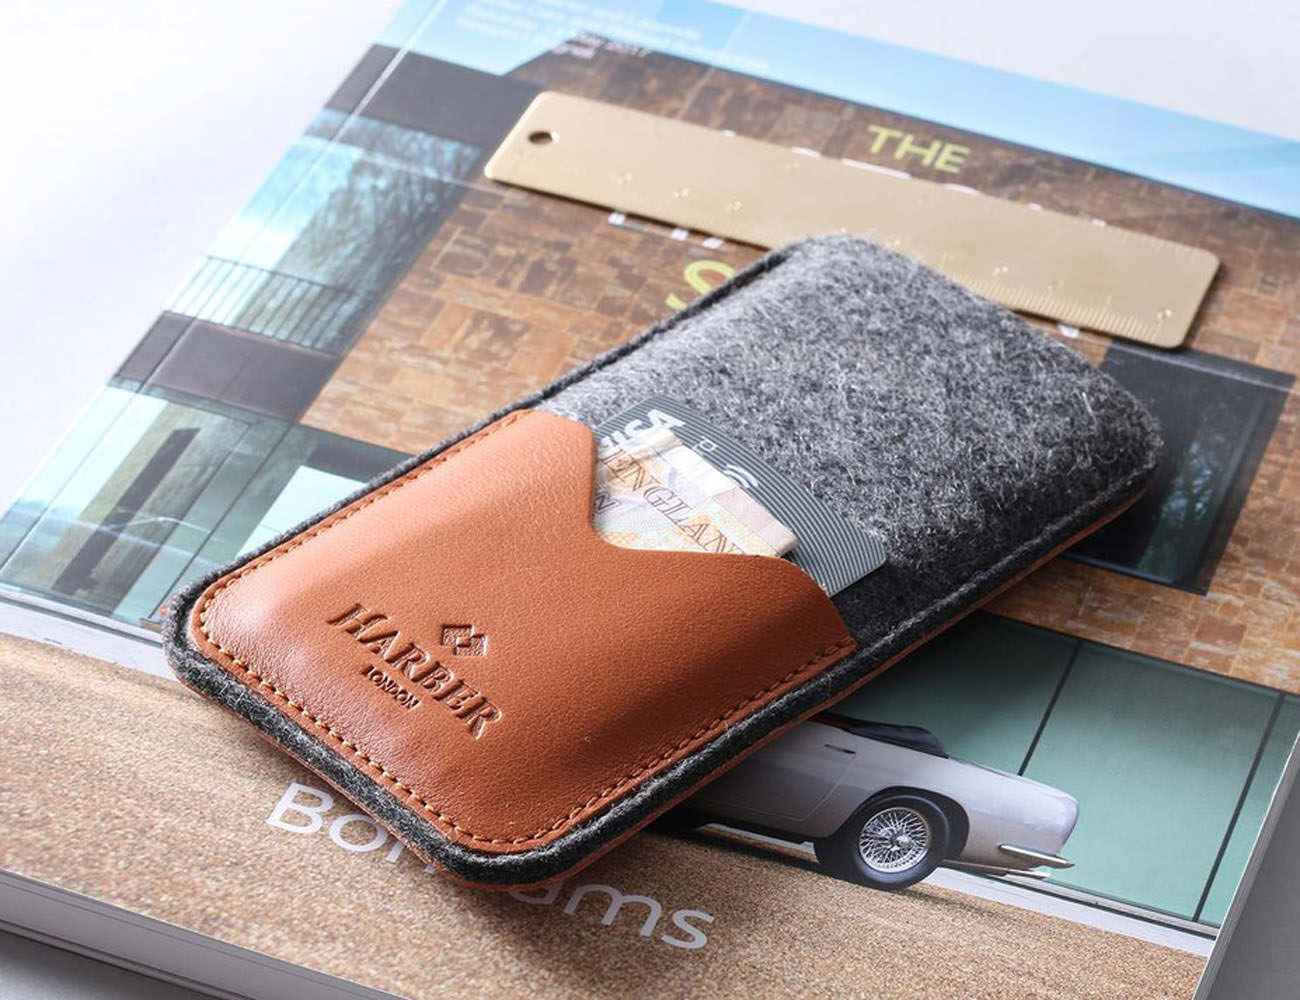 ec0fc42710b7 Harber London Leather Smartphone Sleeve Wallet